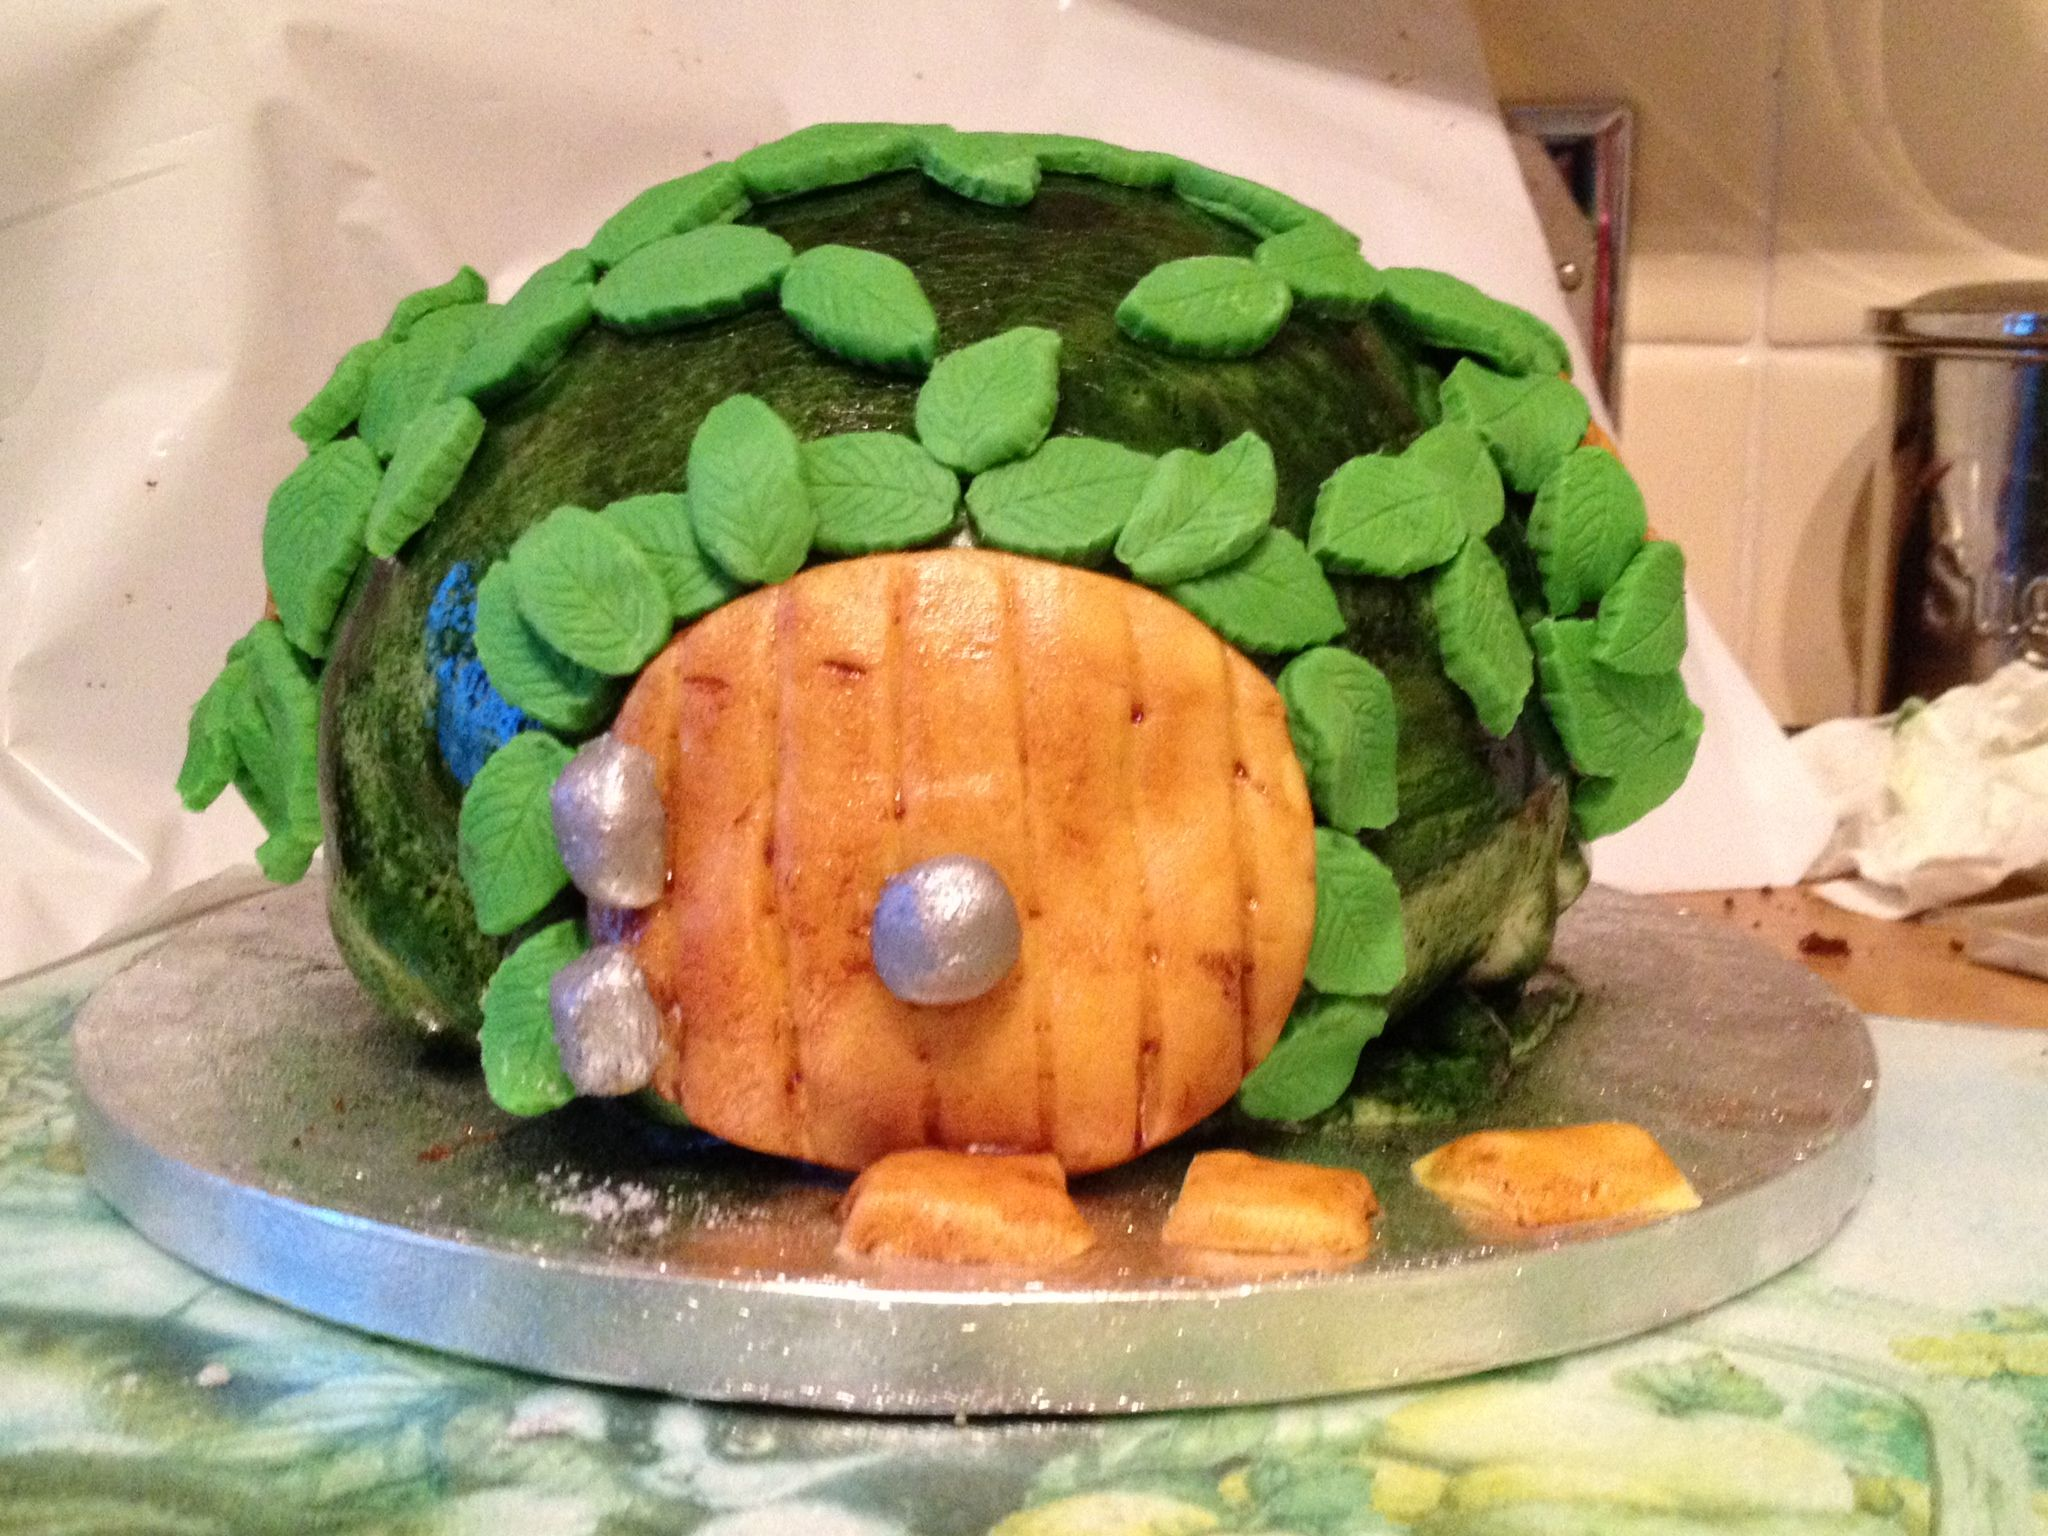 My humble and hurried attempt at a Hobbit house cake!